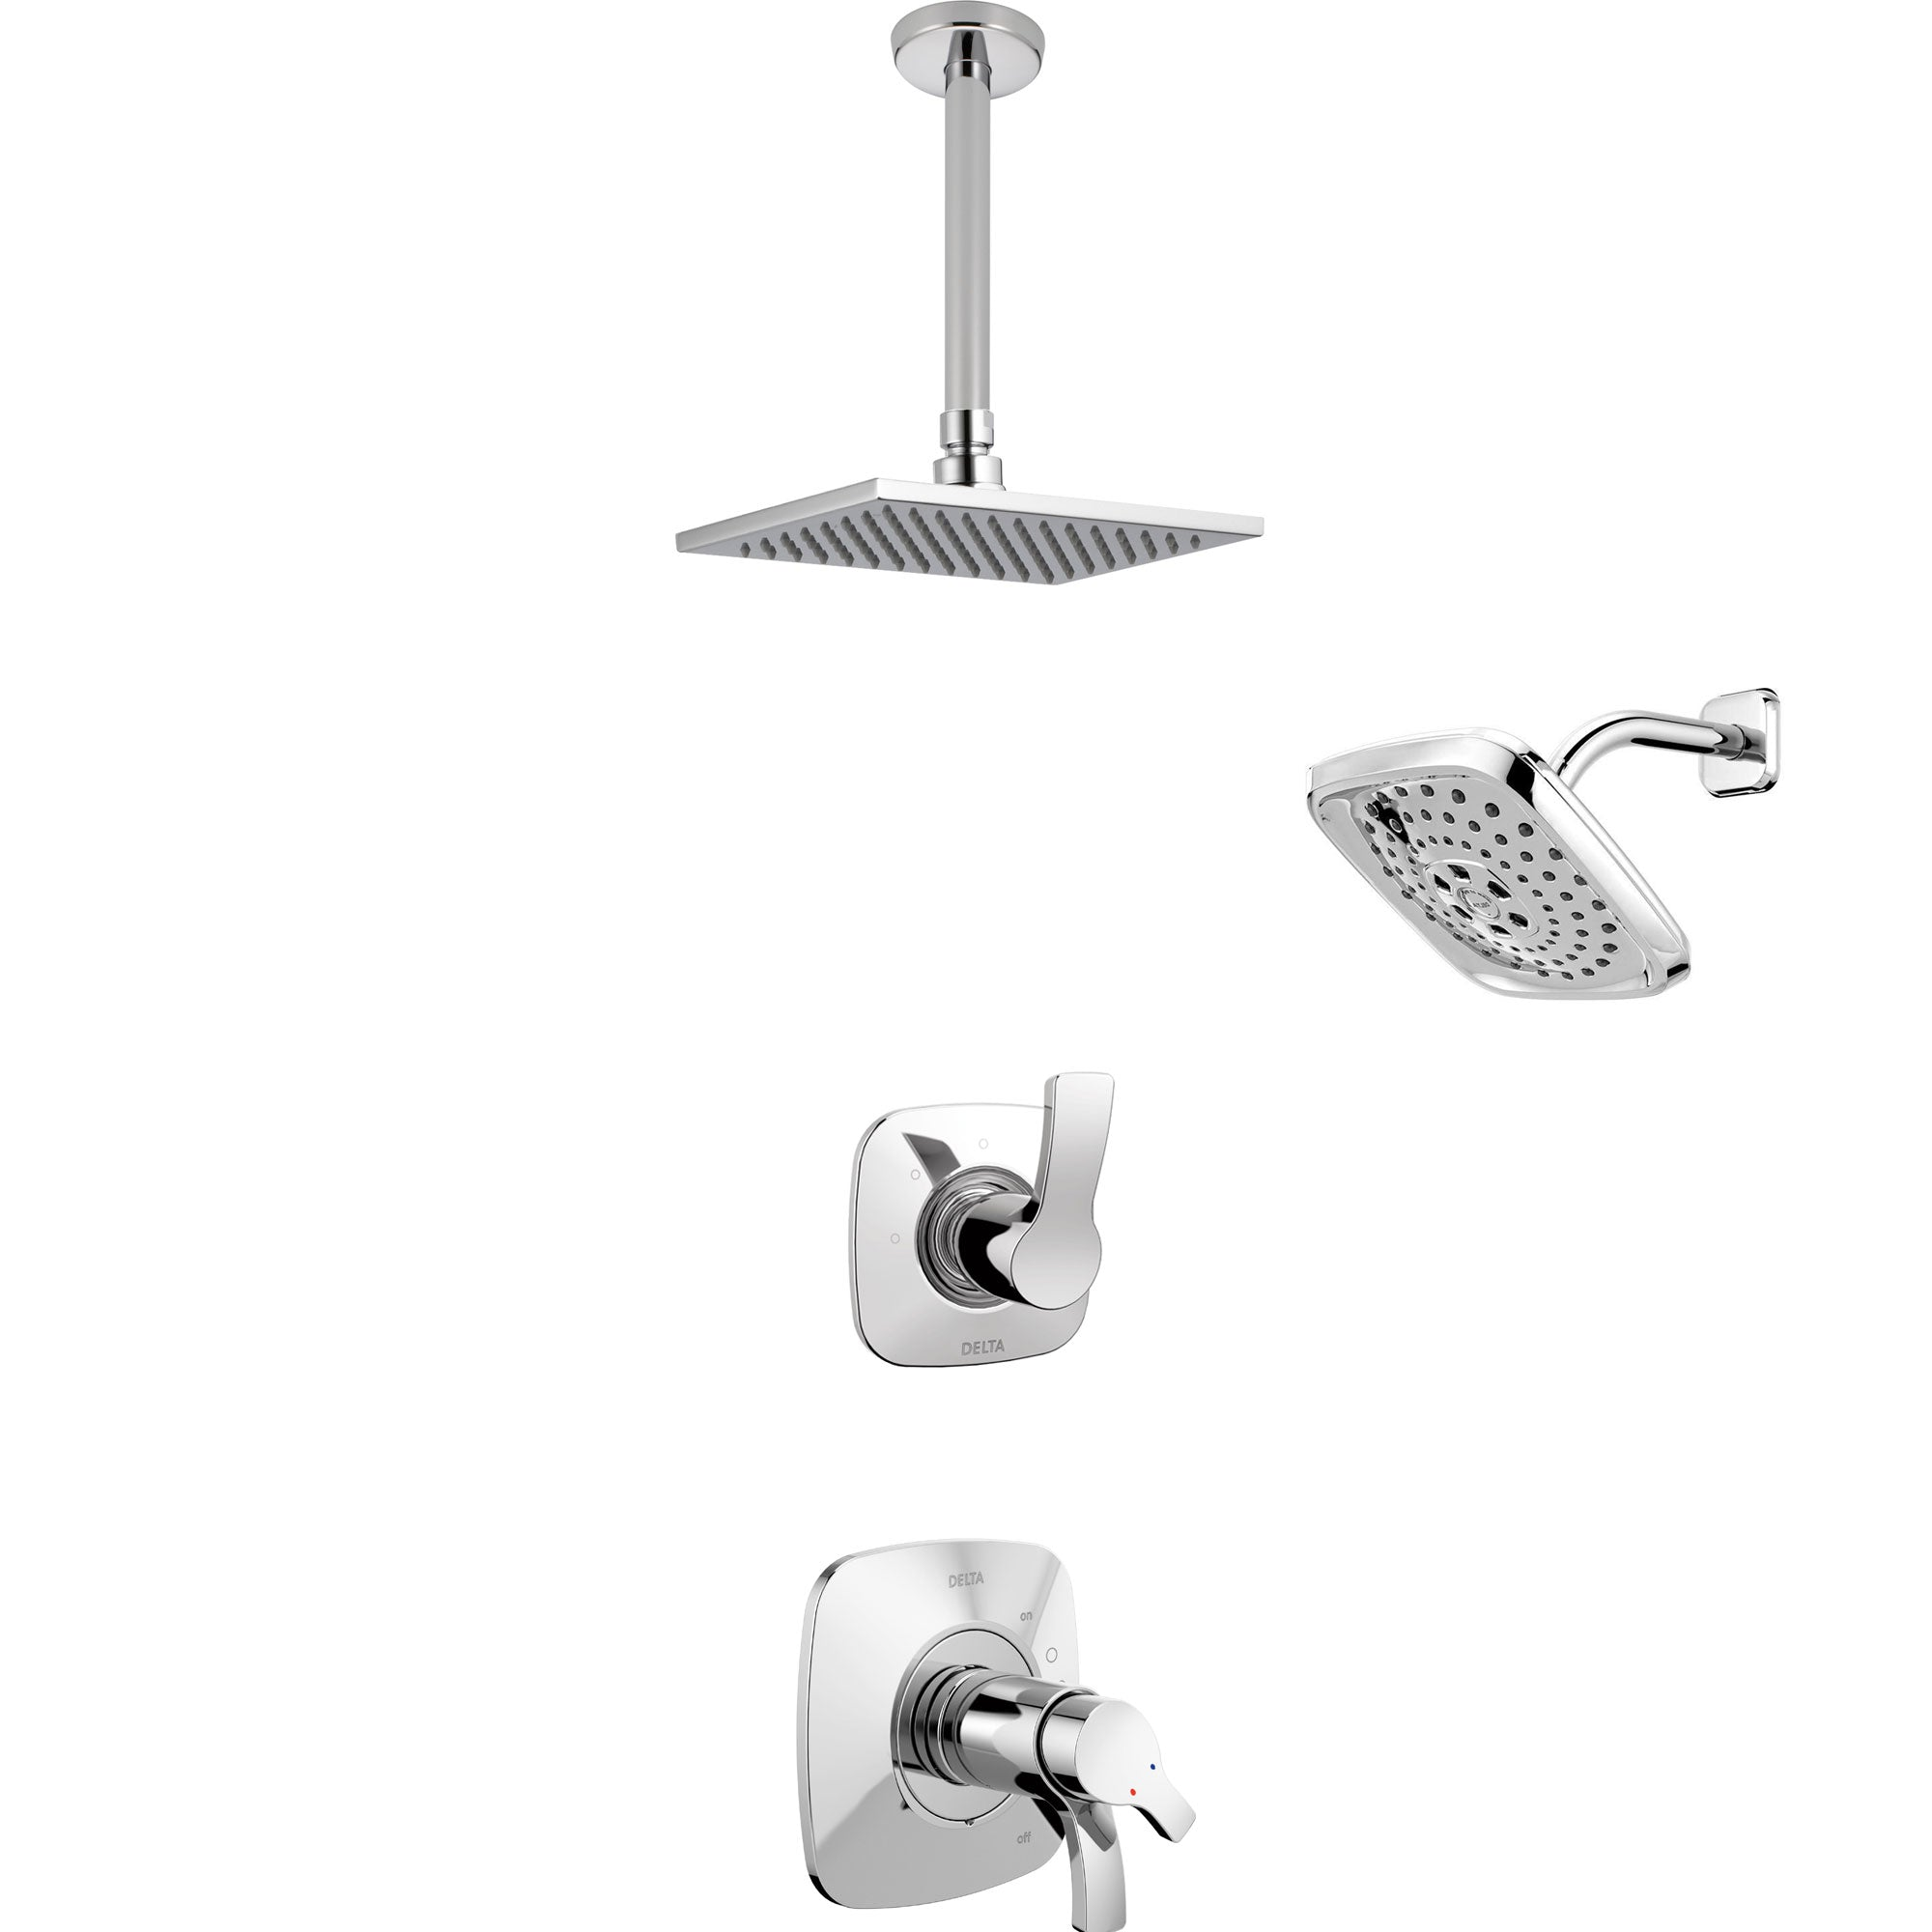 Delta Tesla Chrome Finish Shower System with Dual Thermostatic Control Handle, 3-Setting Diverter, Showerhead, and Ceiling Mount Showerhead SS17T25223